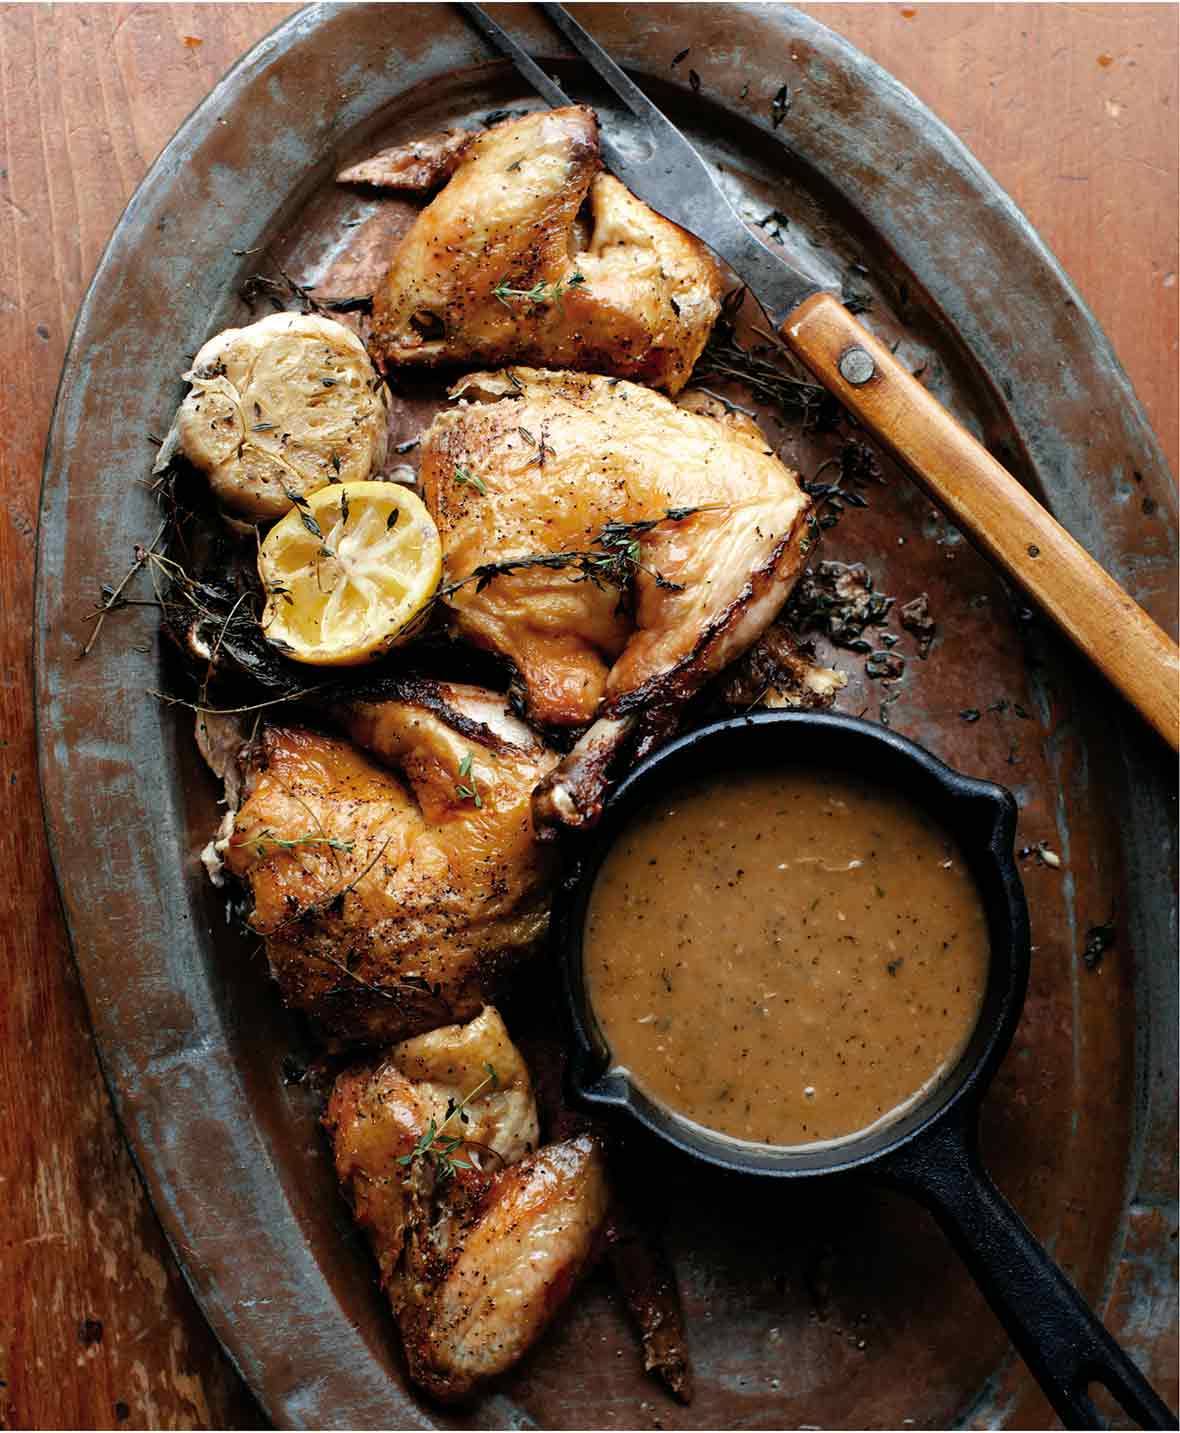 Pieces of roast chicken wth a small dish of pan gravy and a halved lemon and bulb of garlic on an oval metal tray.